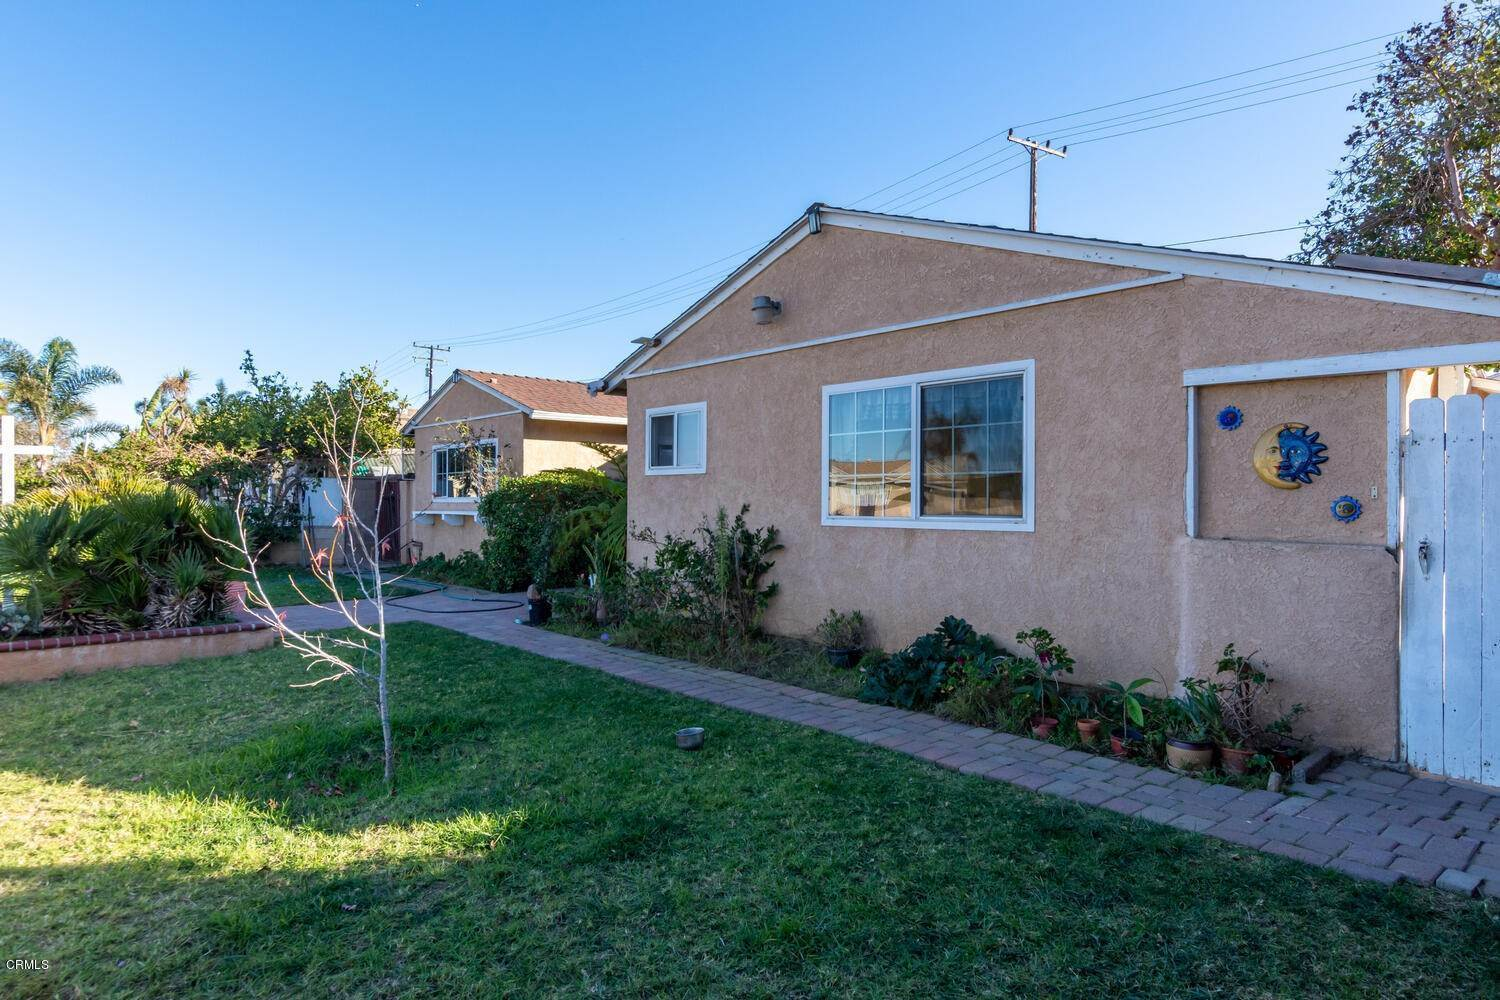 2. Single Family Homes for Sale at 518 Teakwood Street Oxnard, California 93033 United States